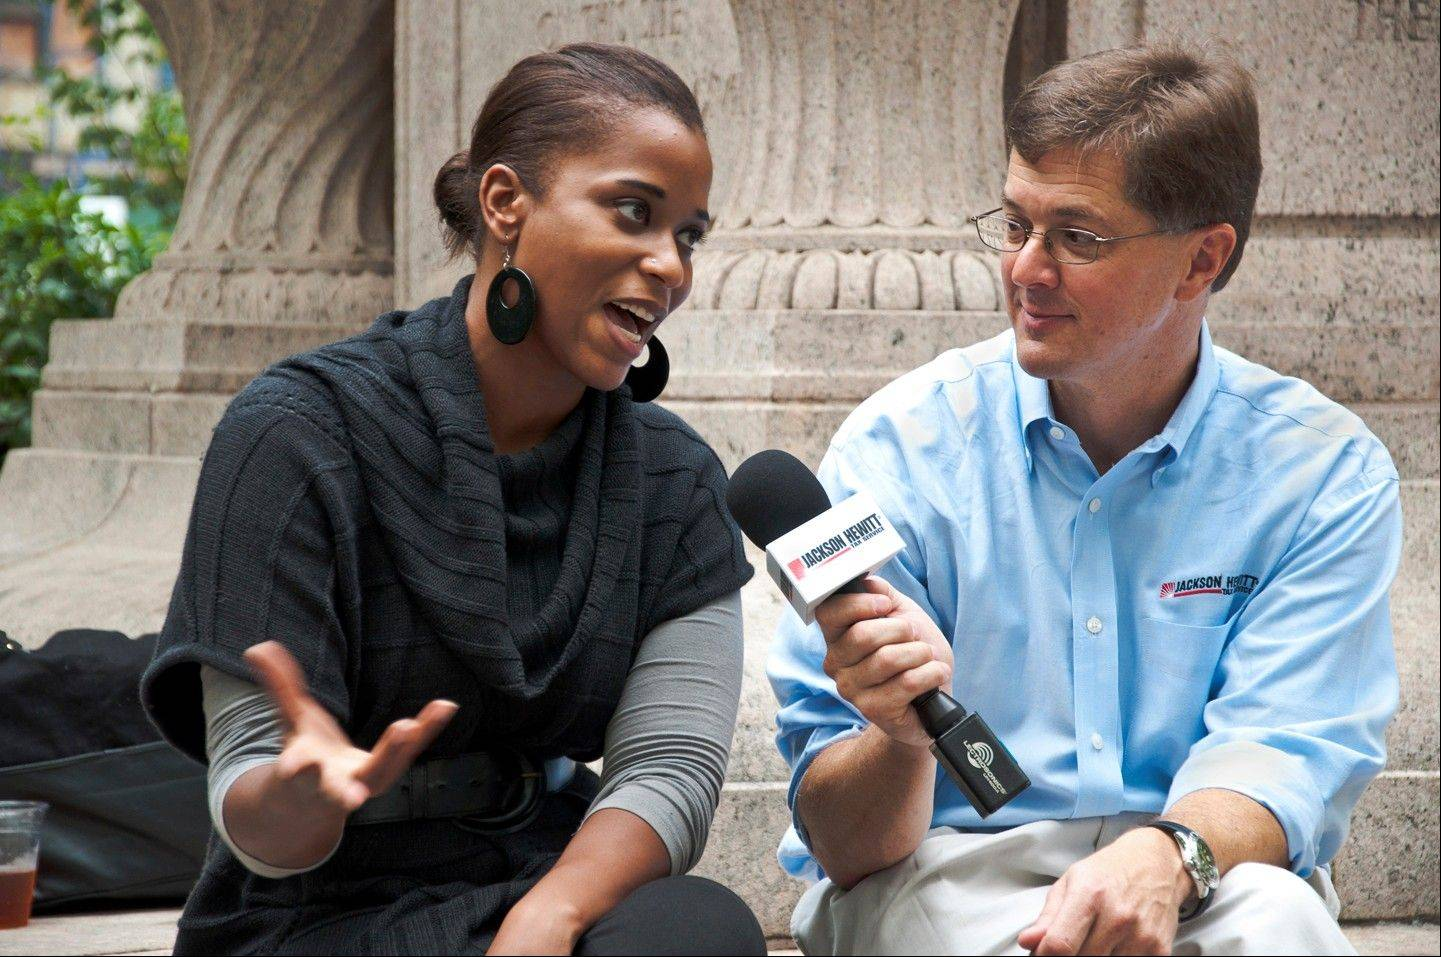 Mark Steber, right, interviews Justine Watson about the fiscal cliff in Madison Square Park for Jackson Hewitt�s Tax Bites video series last September in New York.